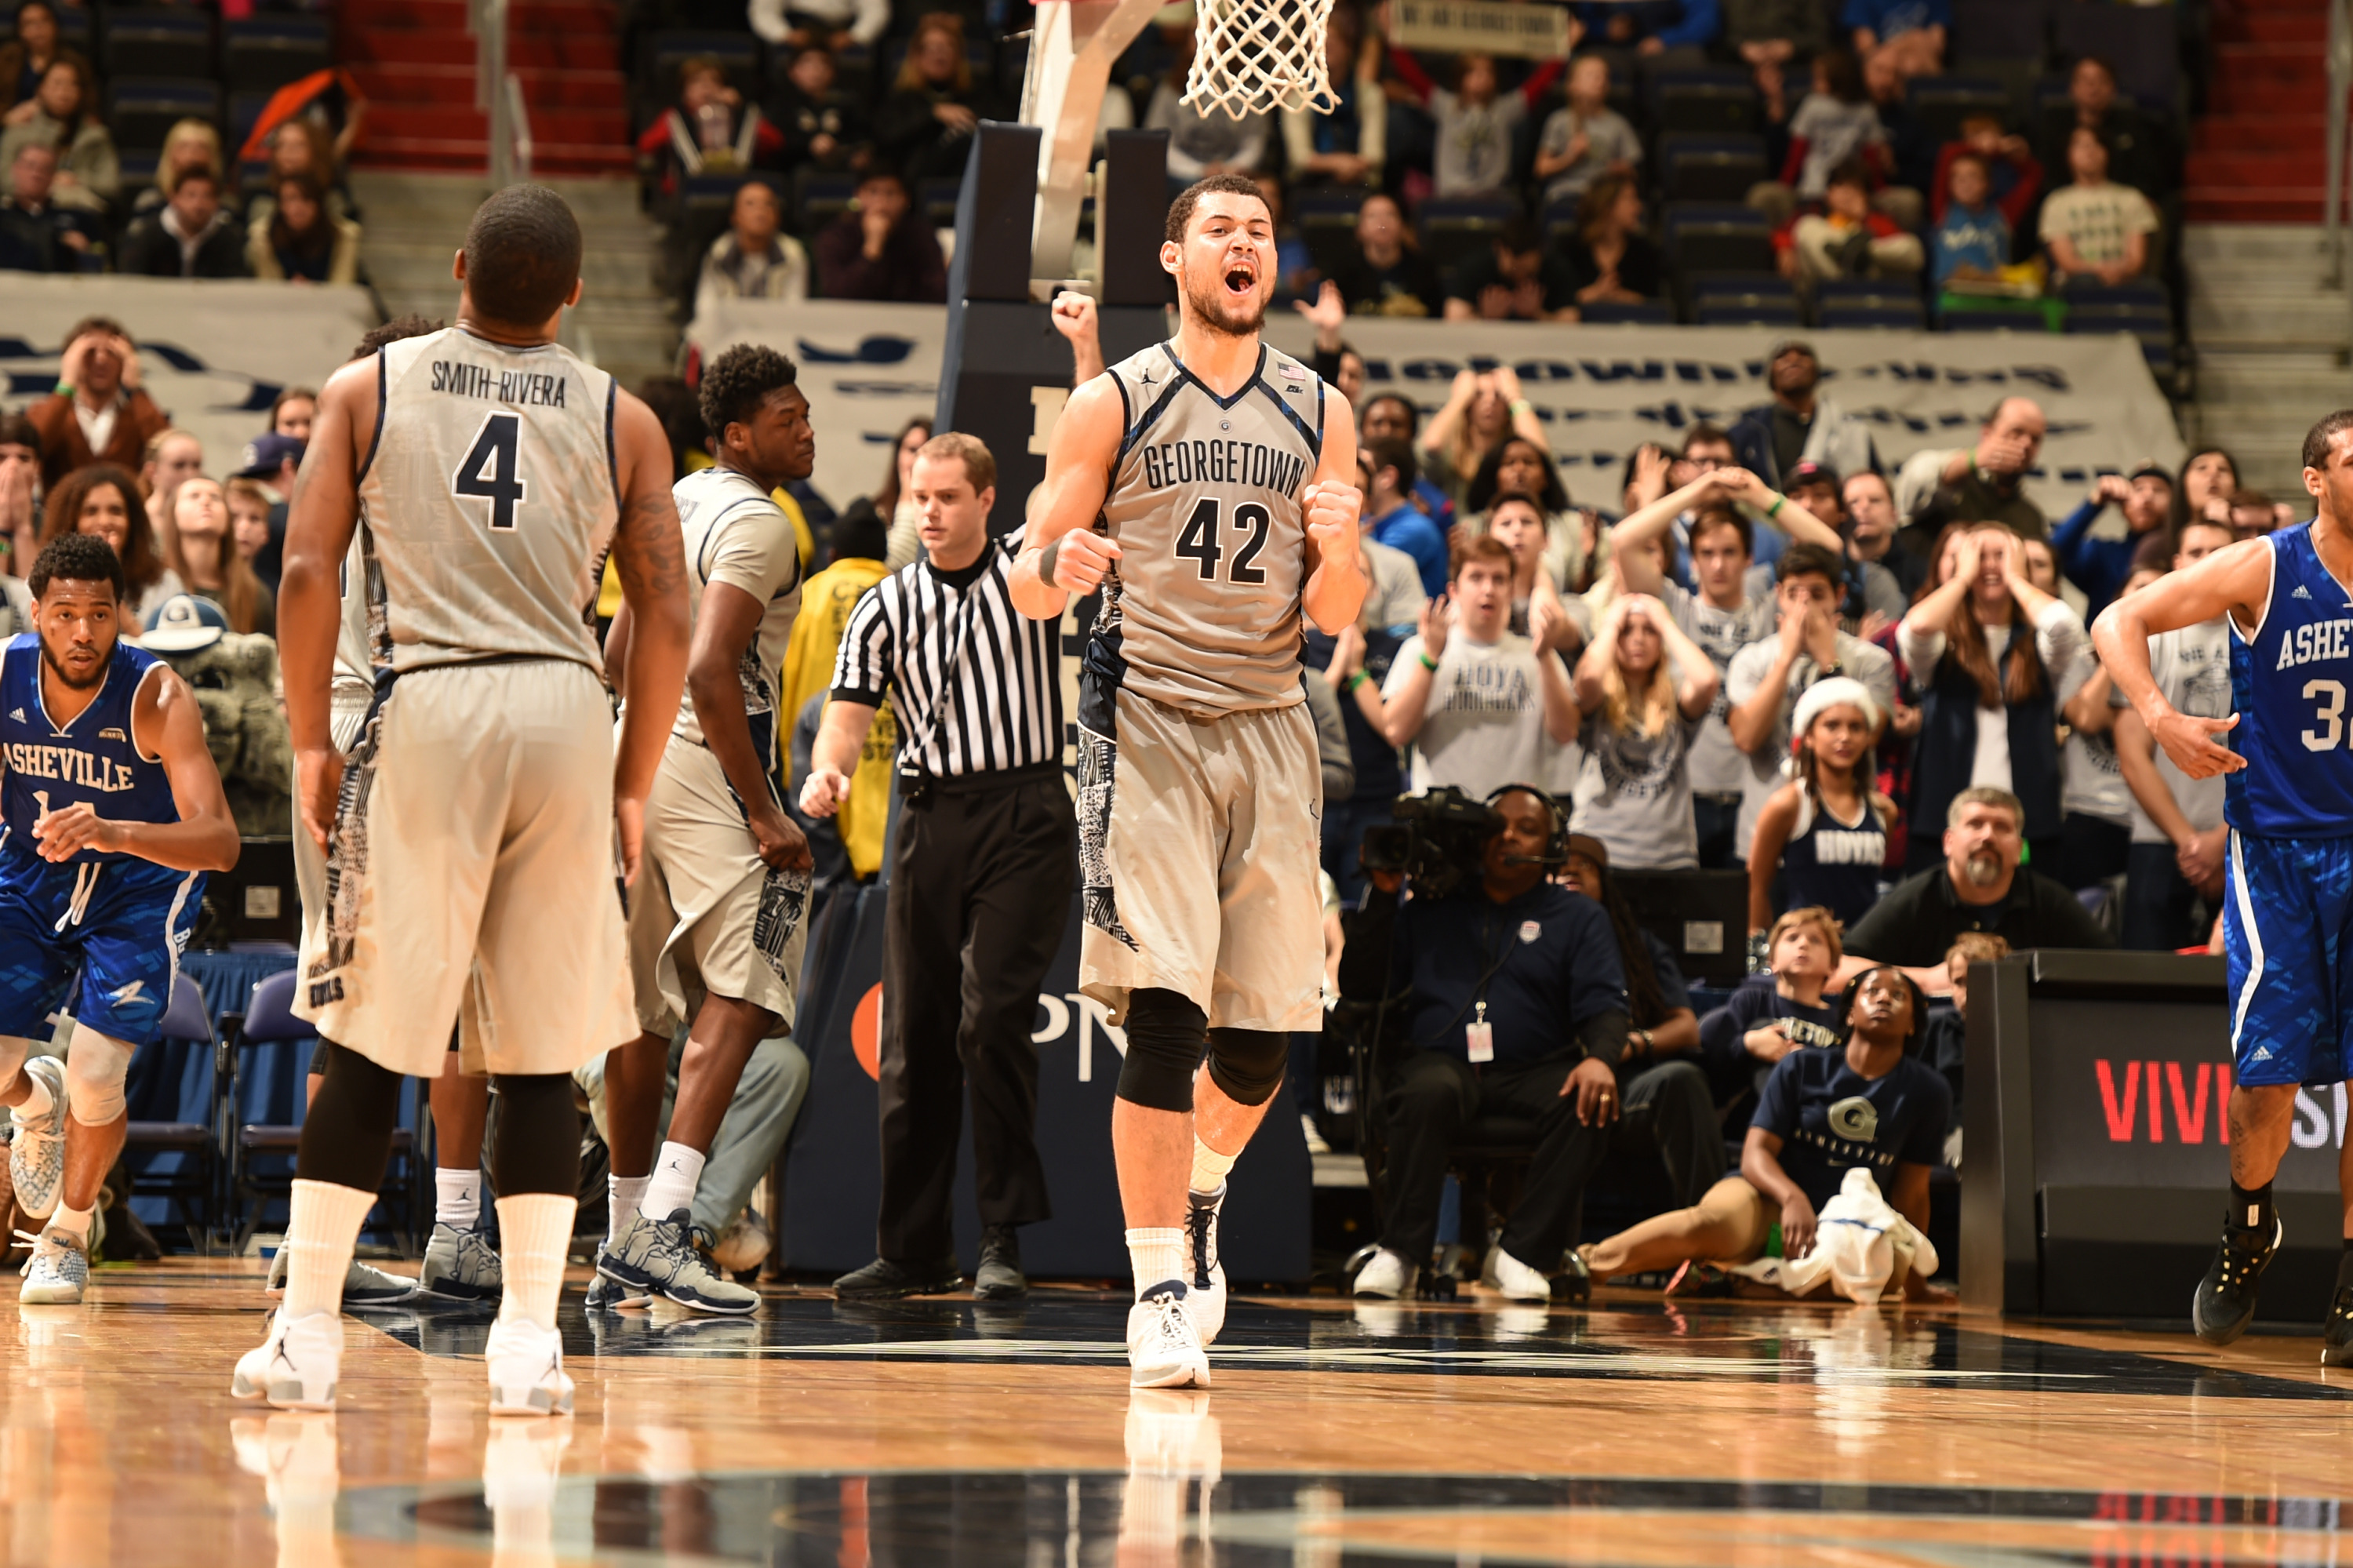 The Georgetown University men's basketball team hit the road today as the Hoyas travel to play at Charlotte on Tuesday, Dec. 22 at Time-Warner Arena.  Tipoff is slated for 7 p.m.